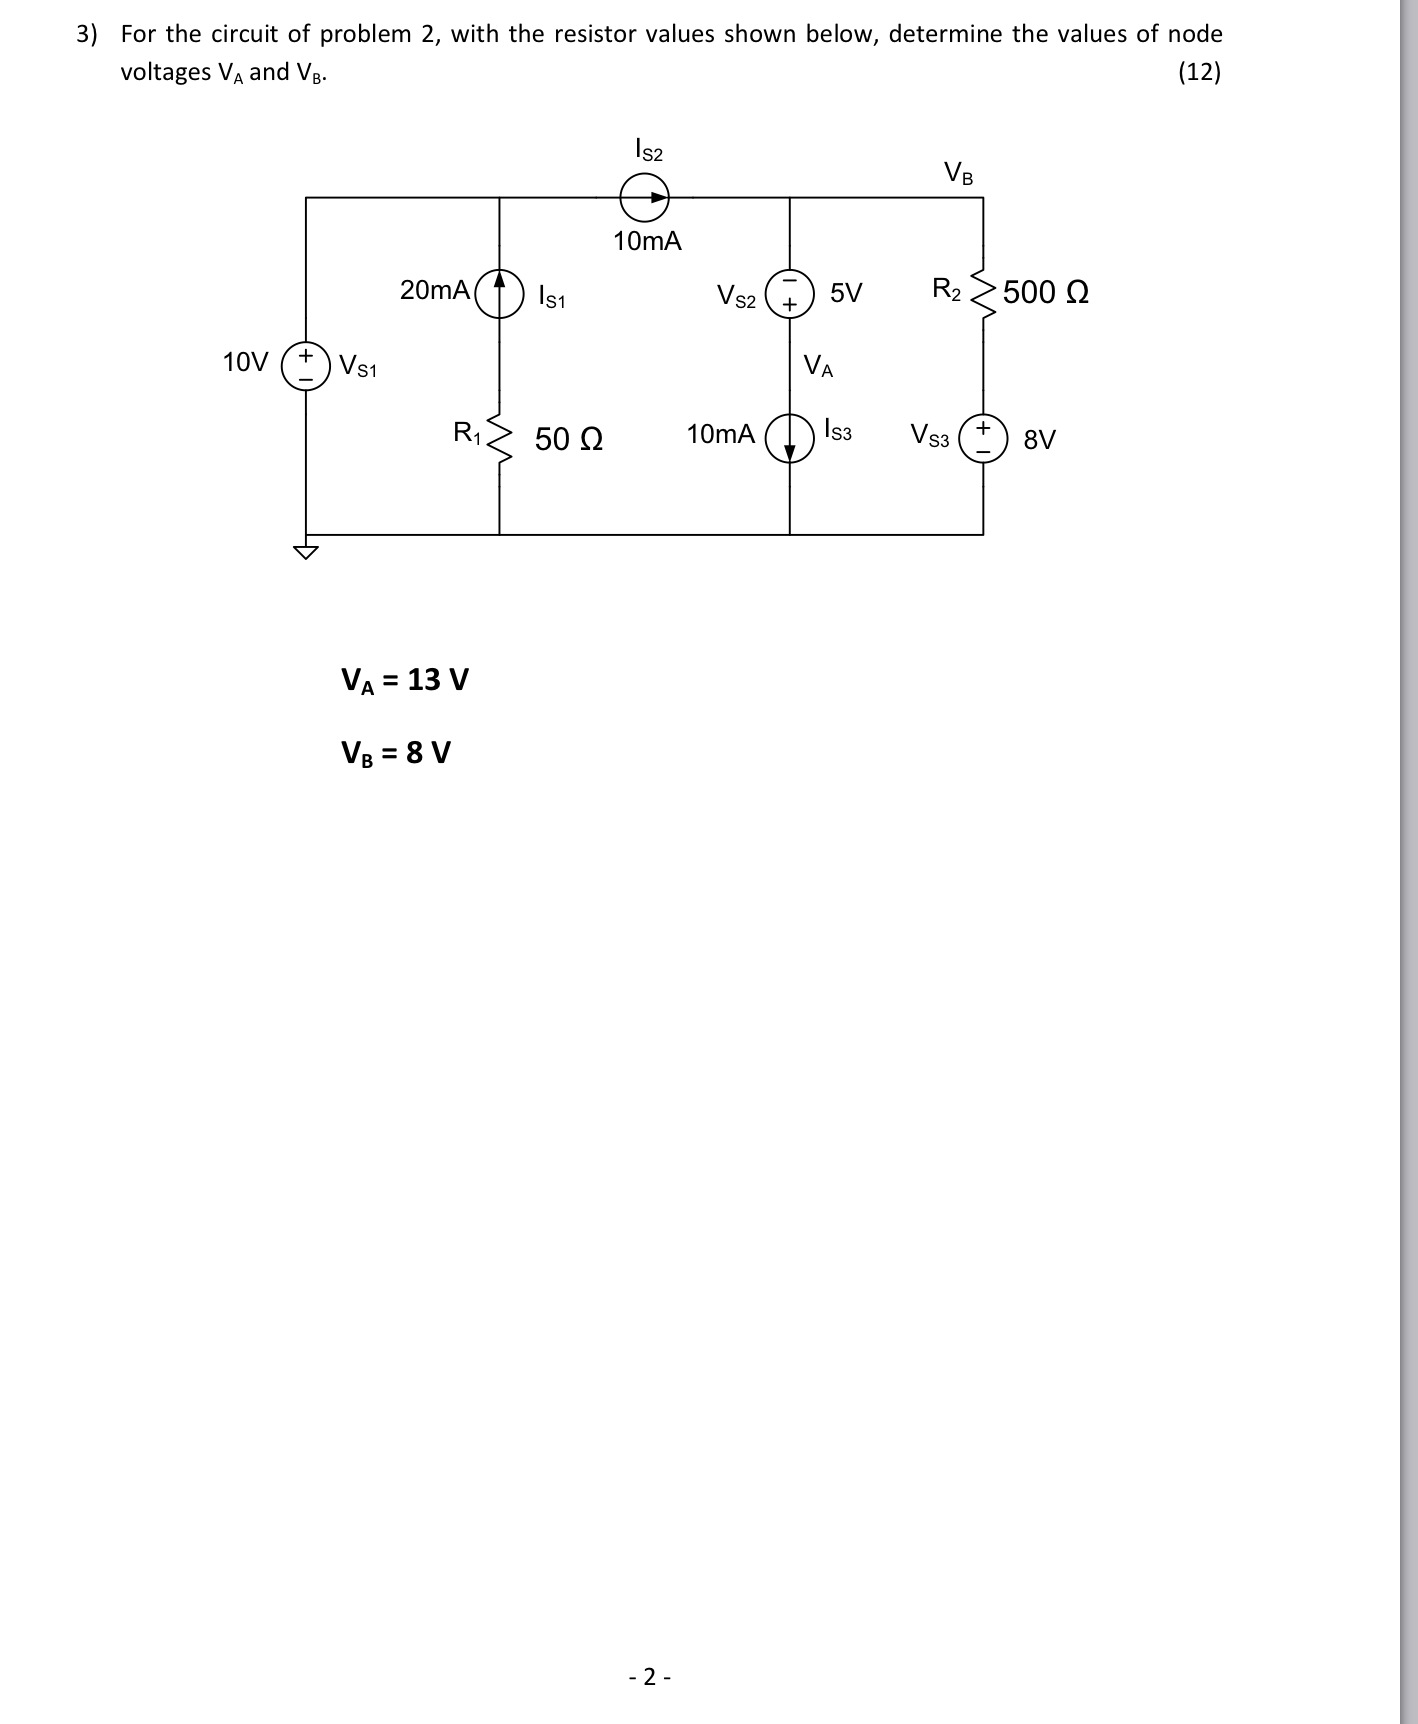 Determine the Norton equivalent circuit for the ne